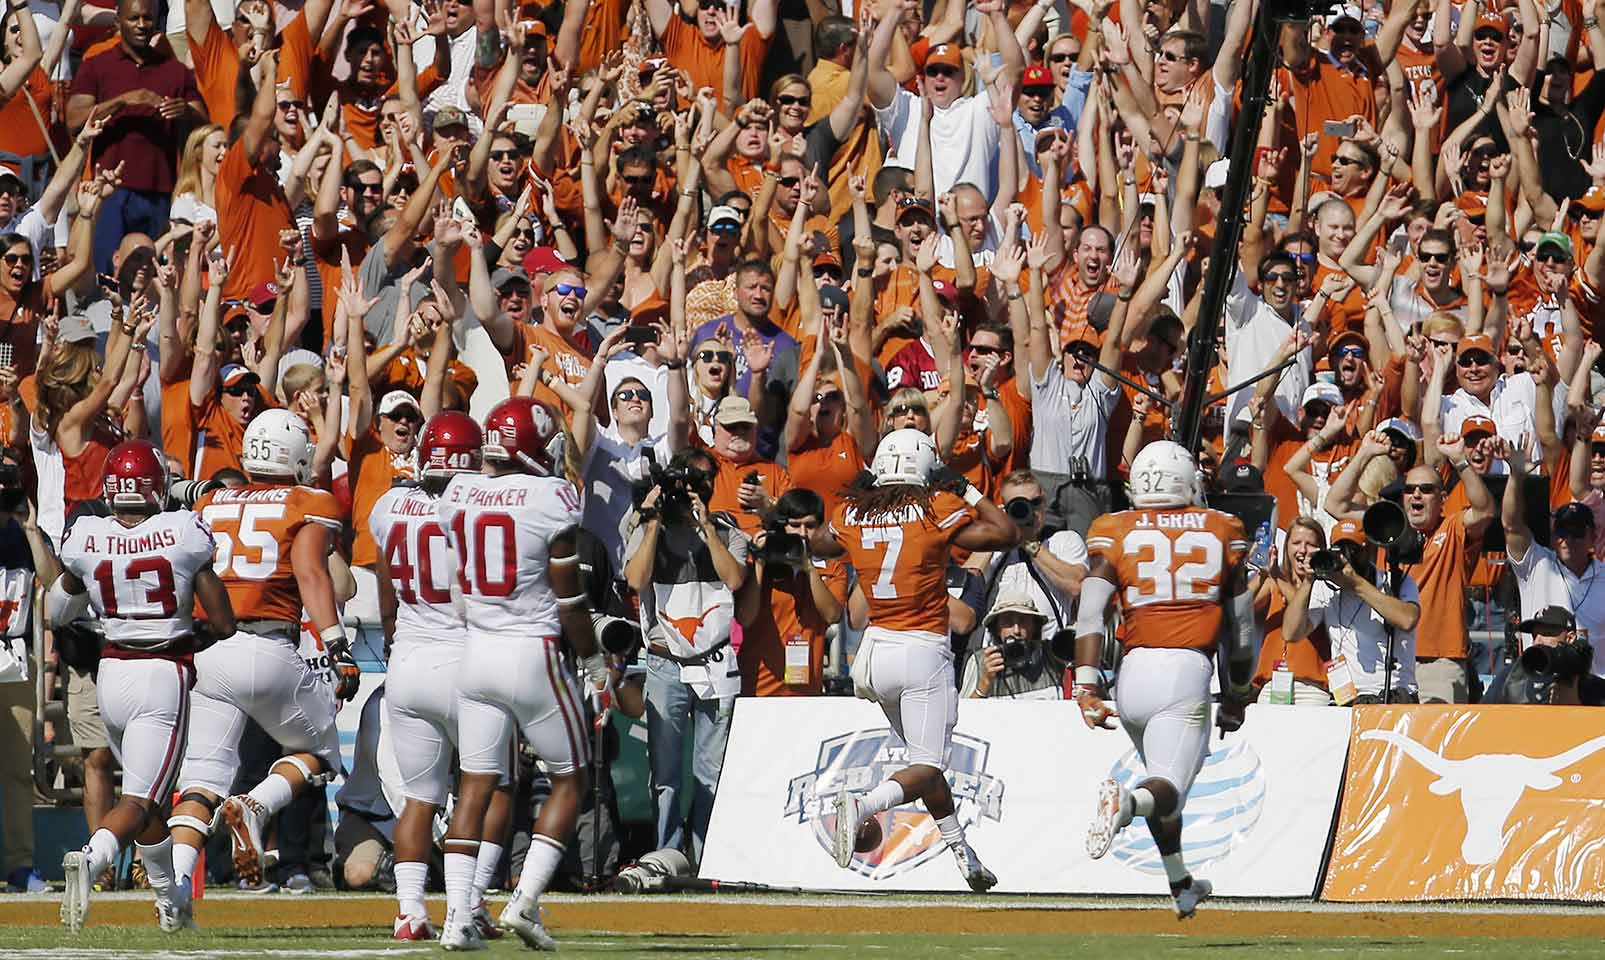 Texas 24, Oklahoma 17: The Longhorns stunned the Sooners in the Red River Rivalry, capitalizing on sloppy tackling to rush for 313 yards. Oklahoma's own ground game got nothing going, gaining just 1.8 yards per carry.